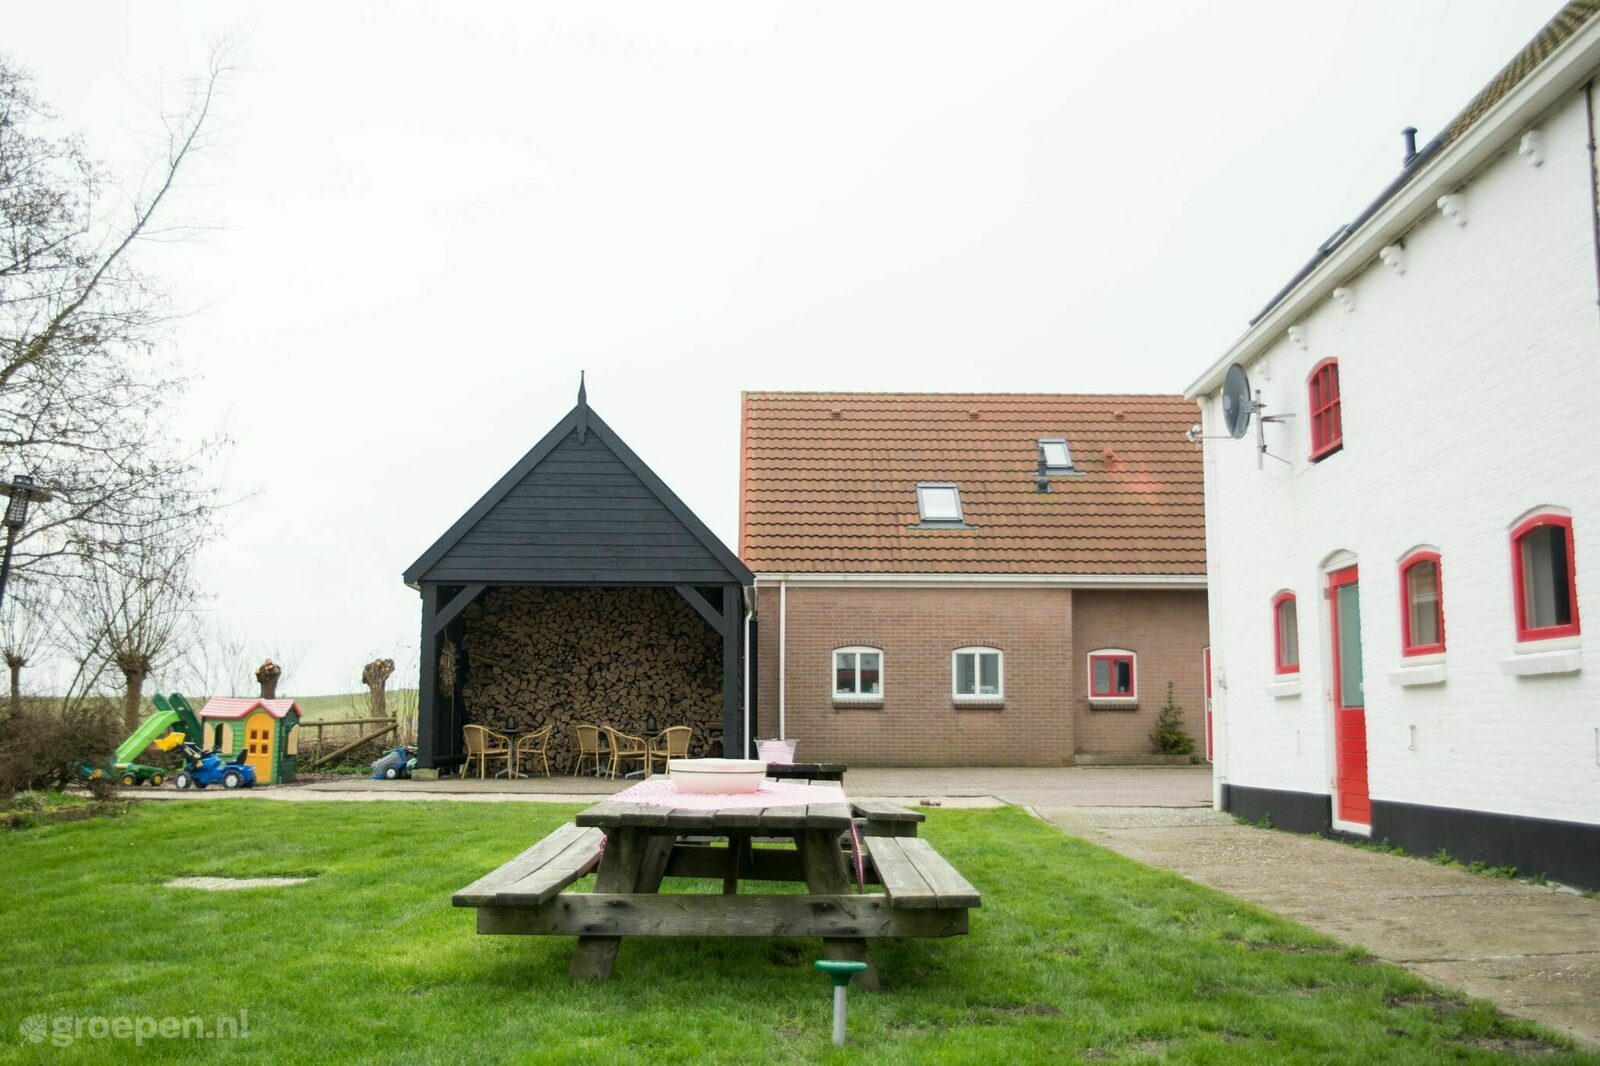 Group accommodation Zierikzee